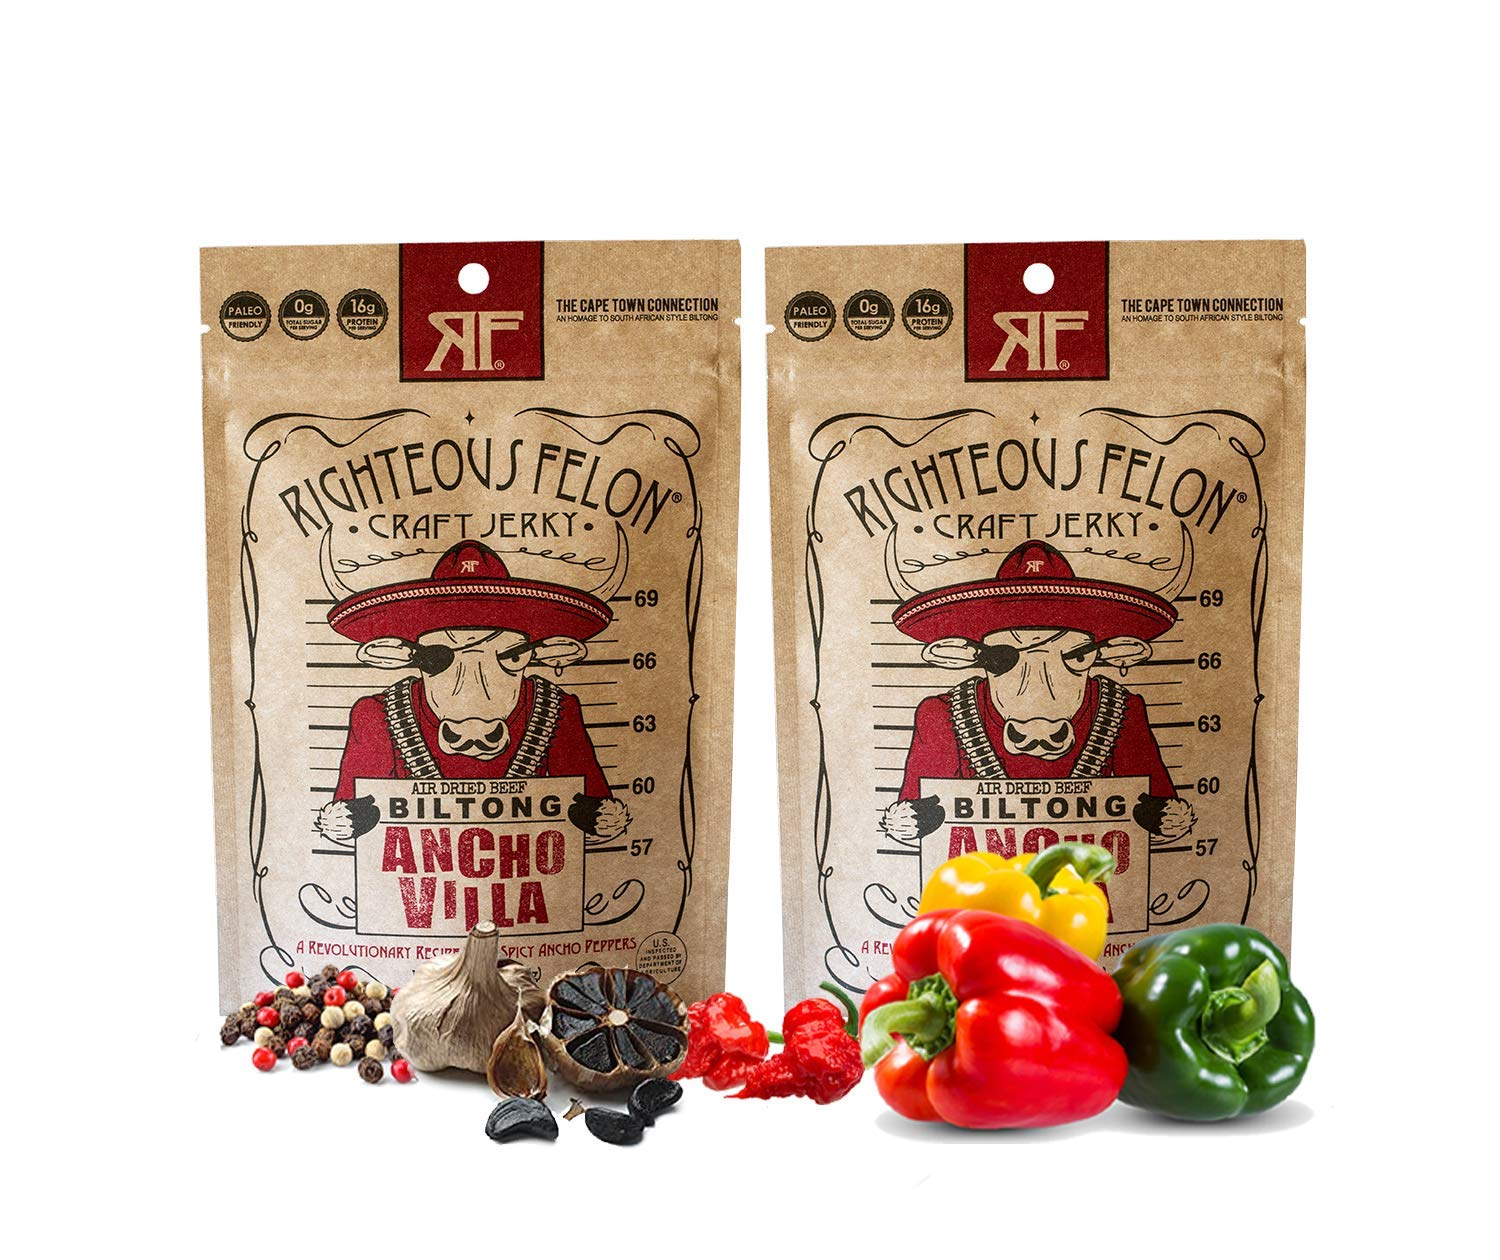 Righteous Felon Ancho Villa Biltong Beef Jerky | Keto, Paleo, Gluten Free, High Protein | Hormone Free All Natural South African Style Biltong, No Artificial Flavors or Preservatives, Low Carb Antibiotics | 2 Count (2oz bags)